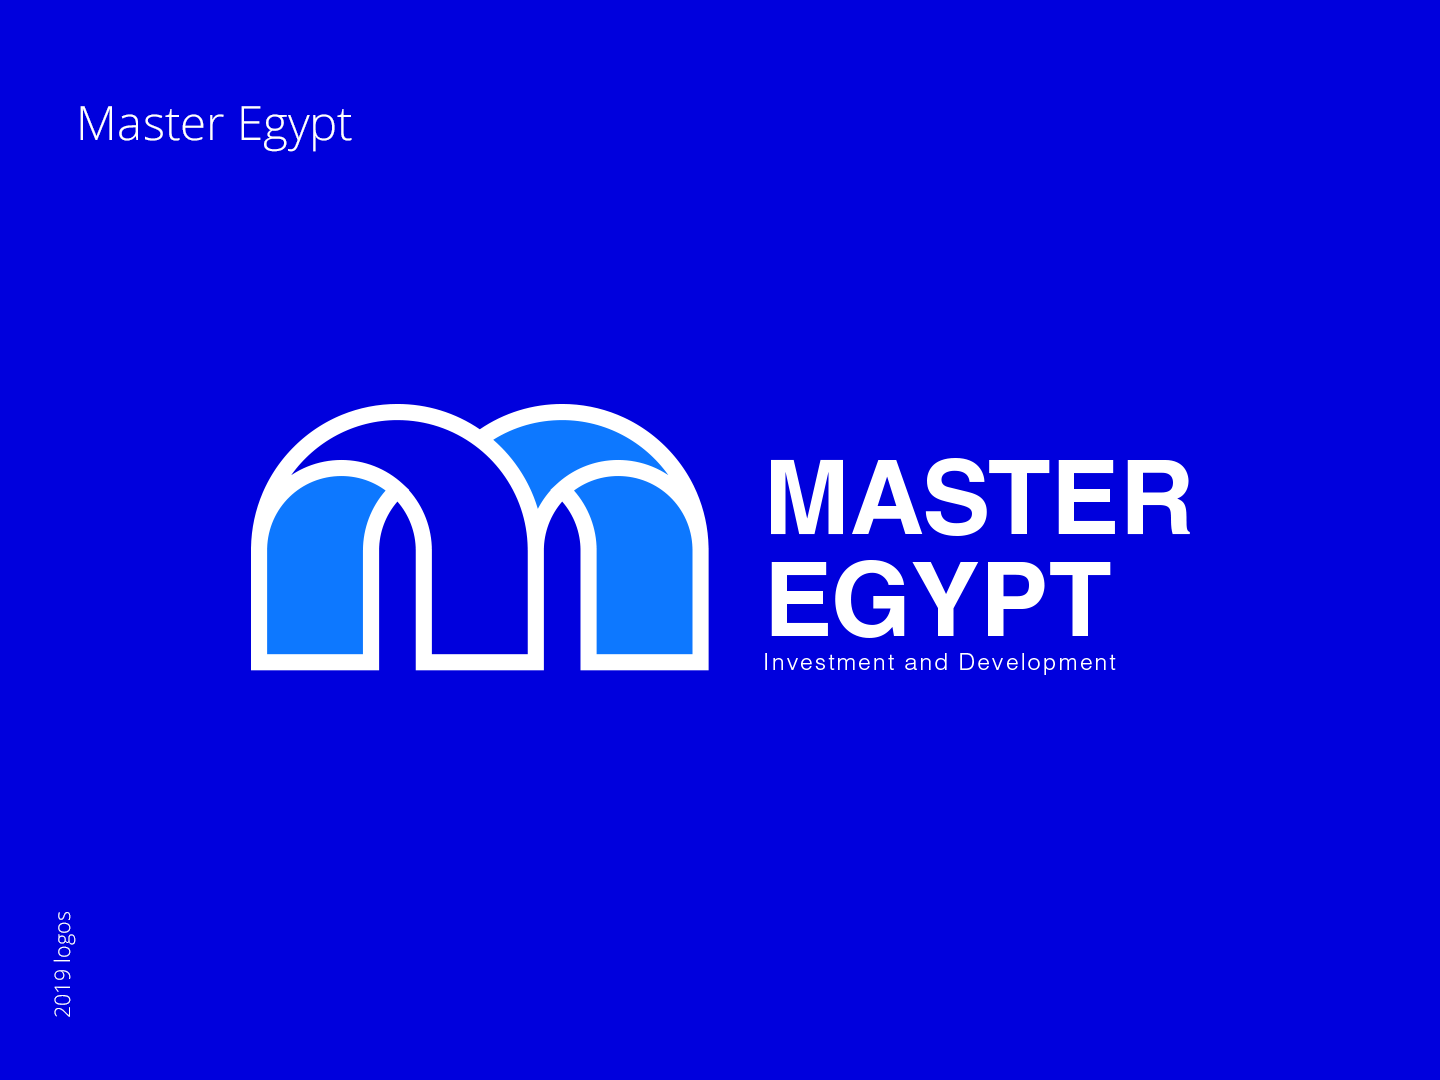 Master Egypt - branding egypt master egypt logo a day blue and white blue blue bird design type typography flat vector icon branding logo real estate branding real estate agency real estate